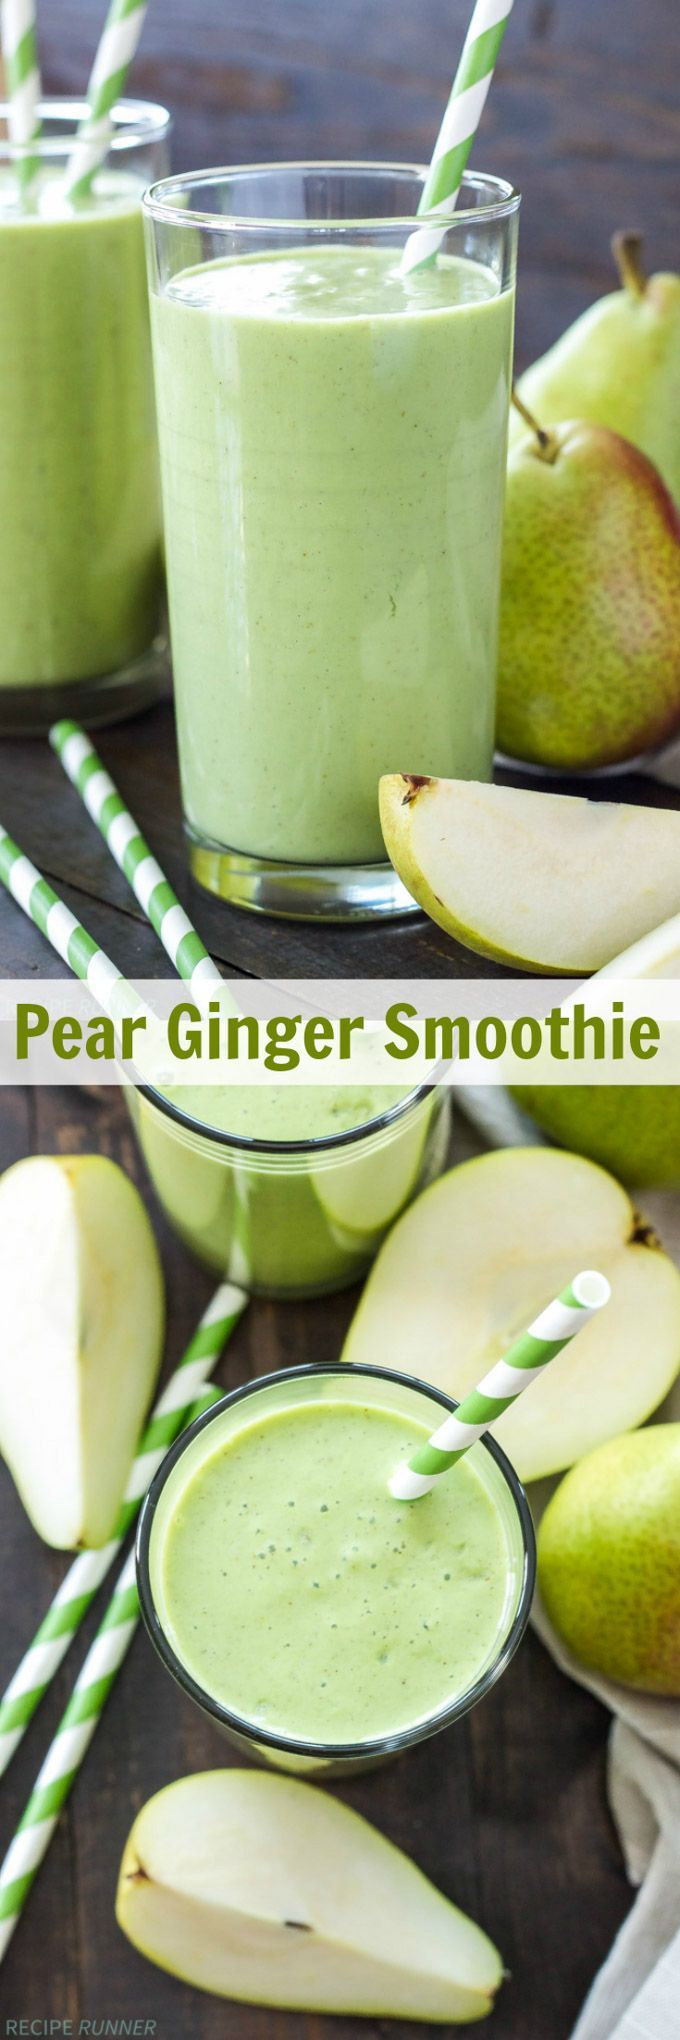 Pear Ginger Smoothie | This pear ginger smoothie is full of fiber, protein and greens! It's the perfect healthy way to start the day!: